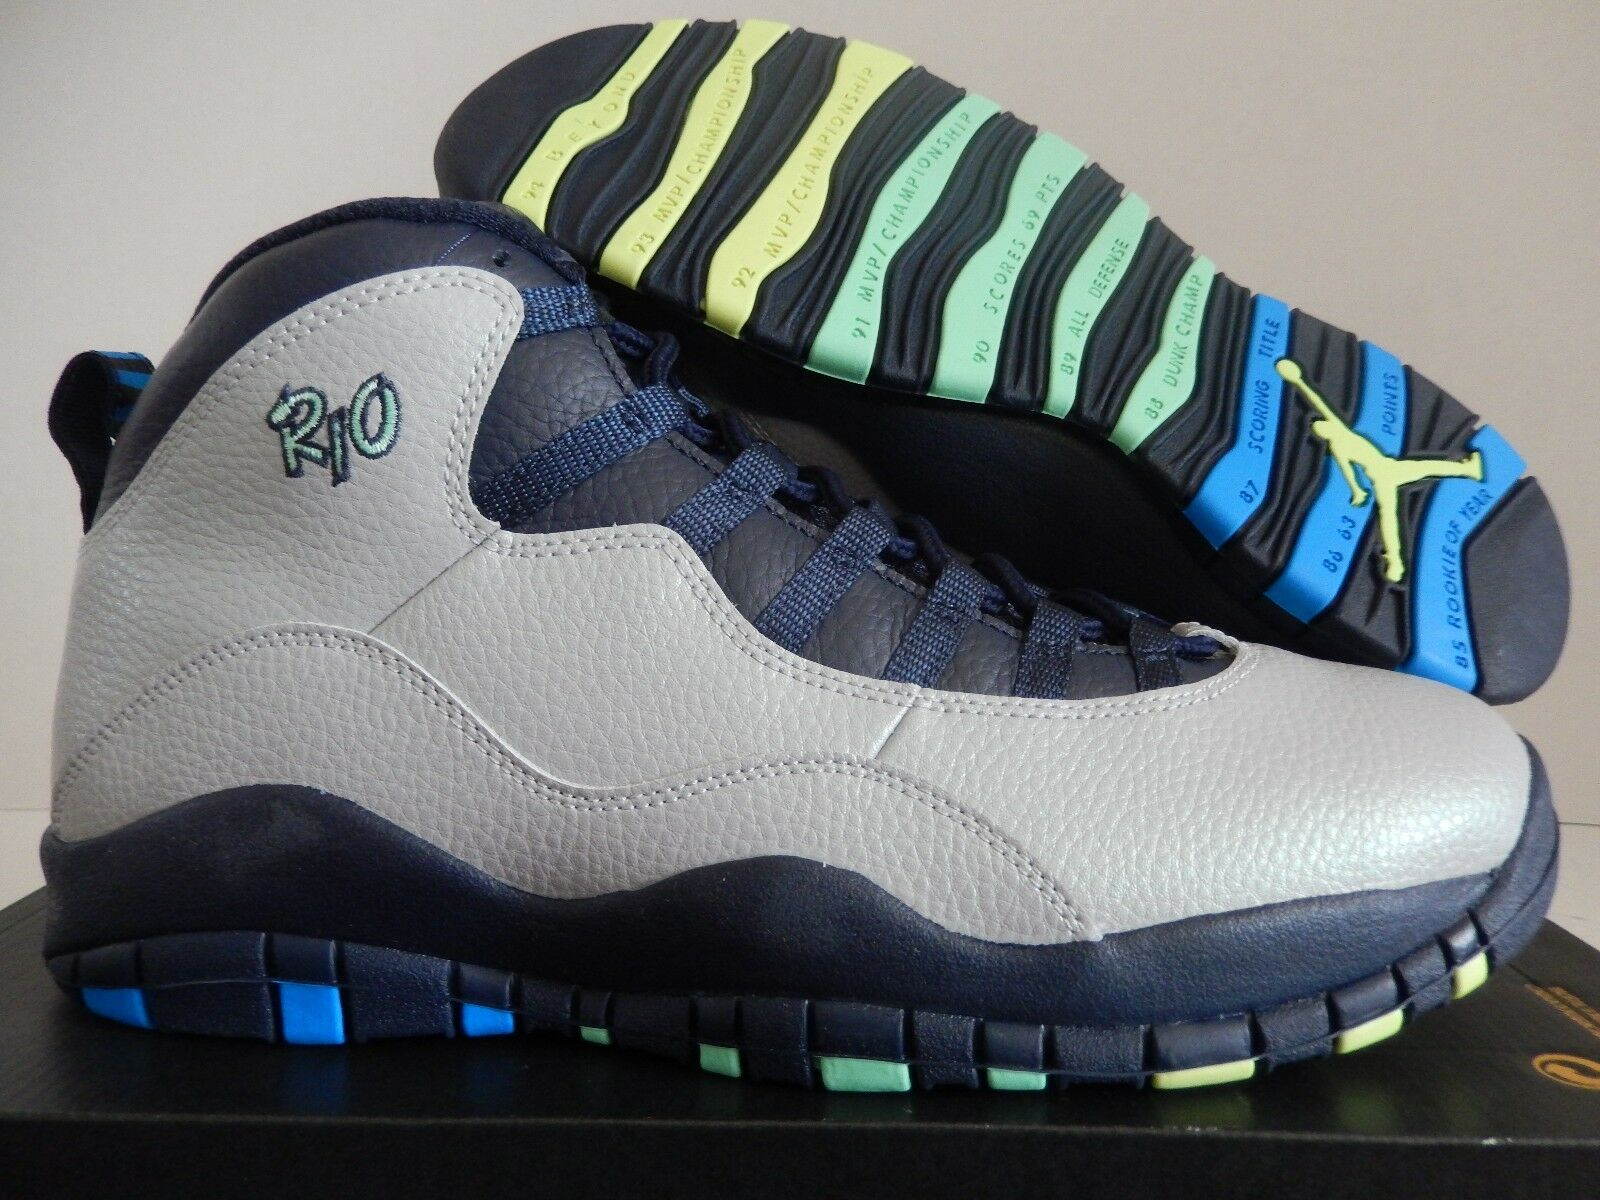 NIKE RIO AIR JORDAN RETRO 10 RIO NIKE CITY PACK WOLF GREY-PHOTO BLUE SZ 10.5 [310805-019] c75e94